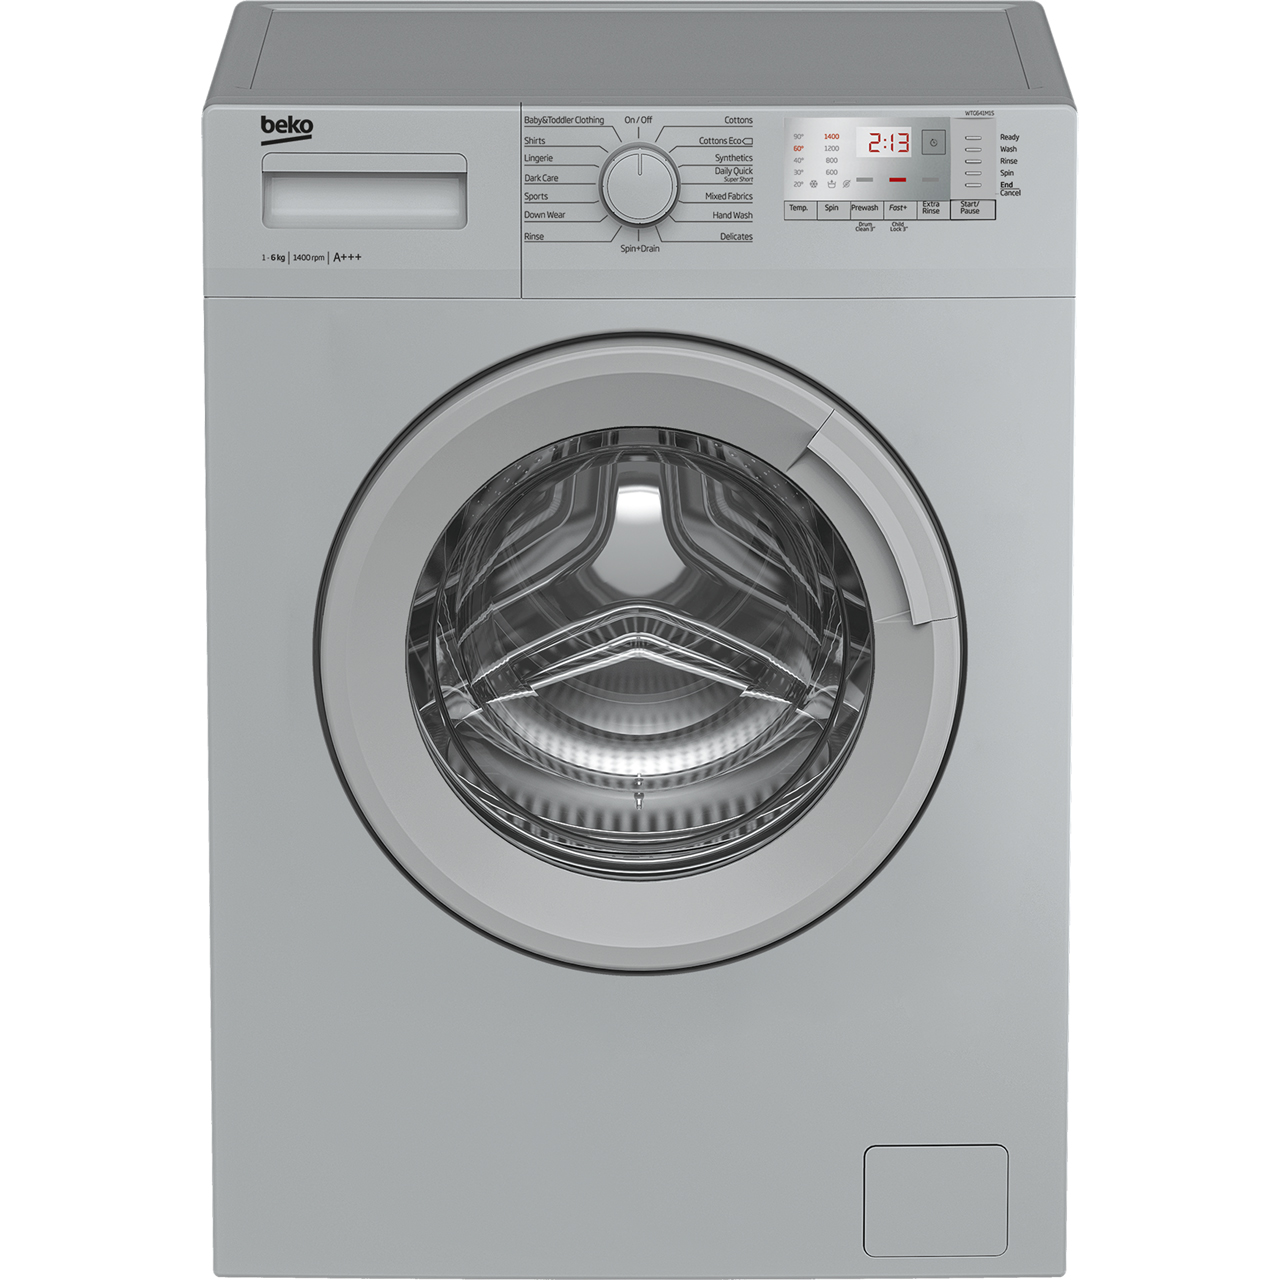 hotpoint aquarius washing machine wiring diagram wiring diagram. Black Bedroom Furniture Sets. Home Design Ideas